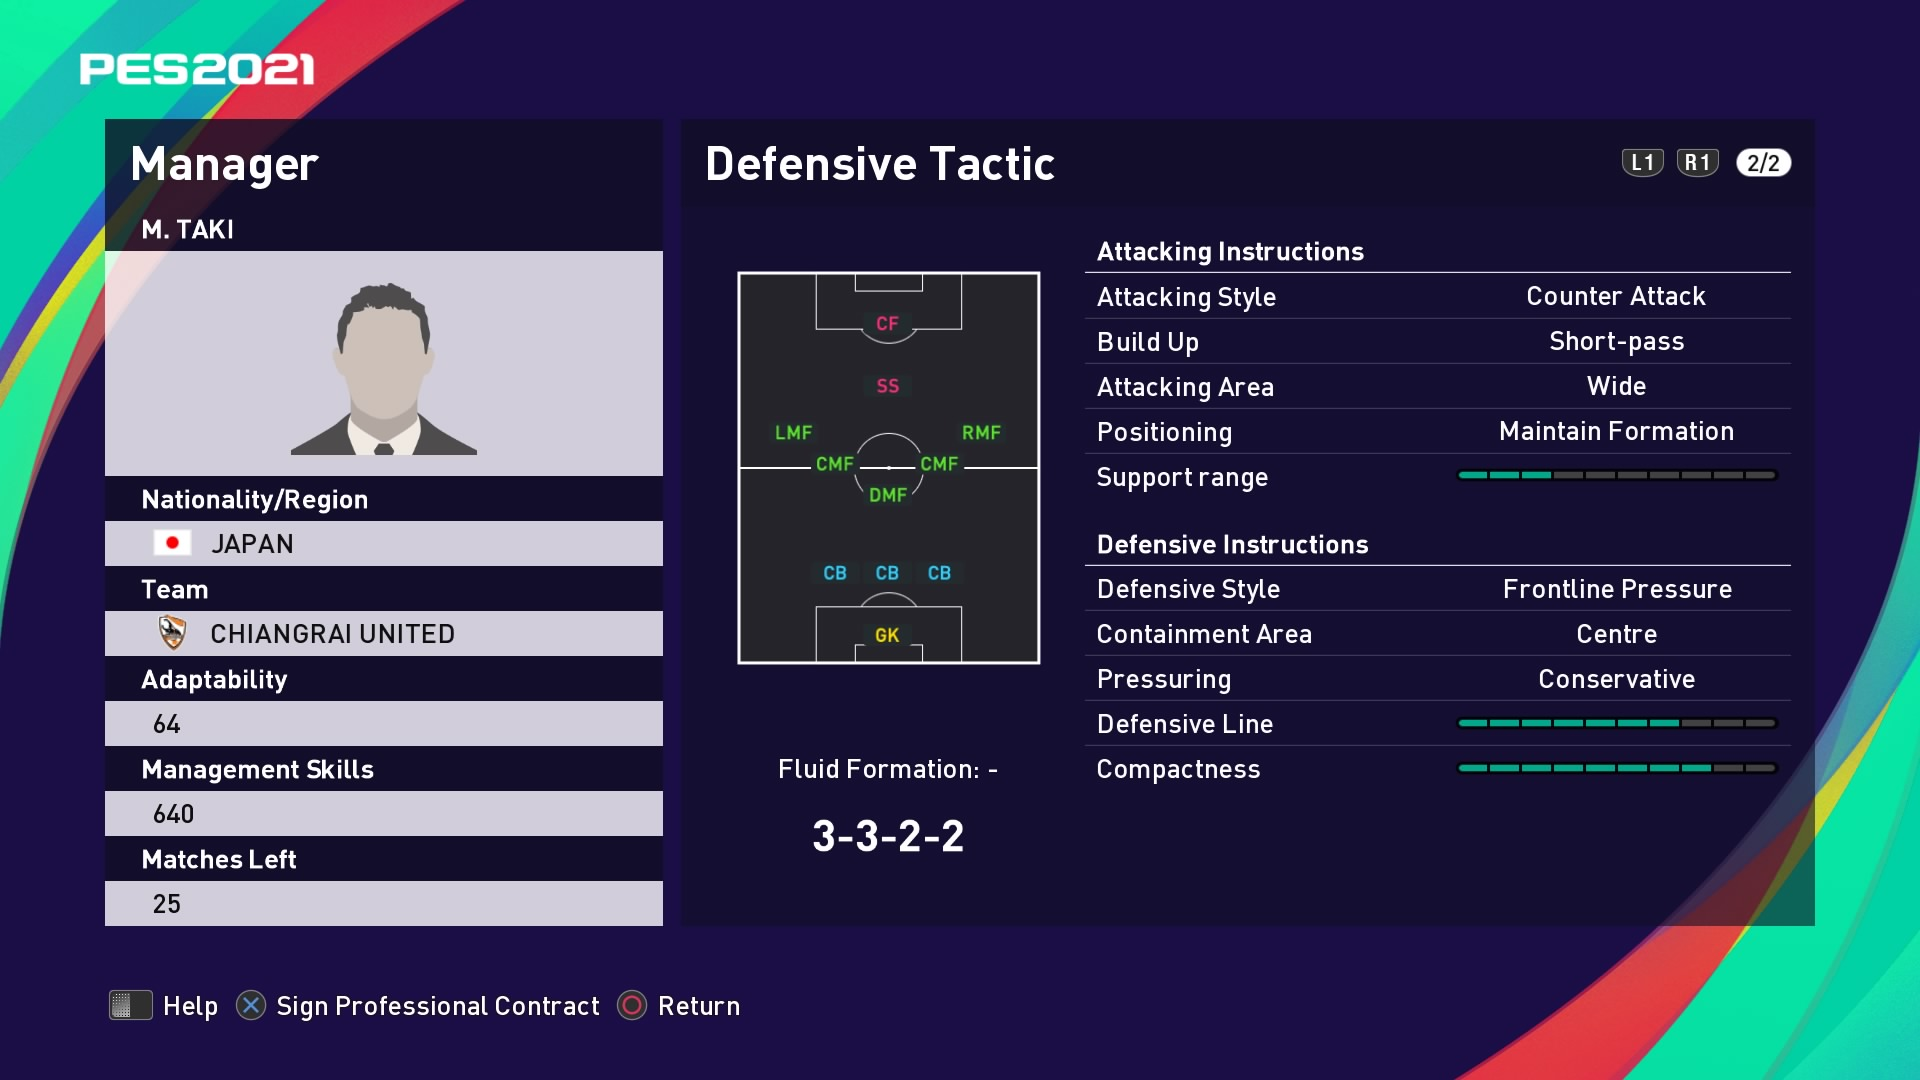 M. Taki (Masami Taki) Defensive Tactic in PES 2021 myClub